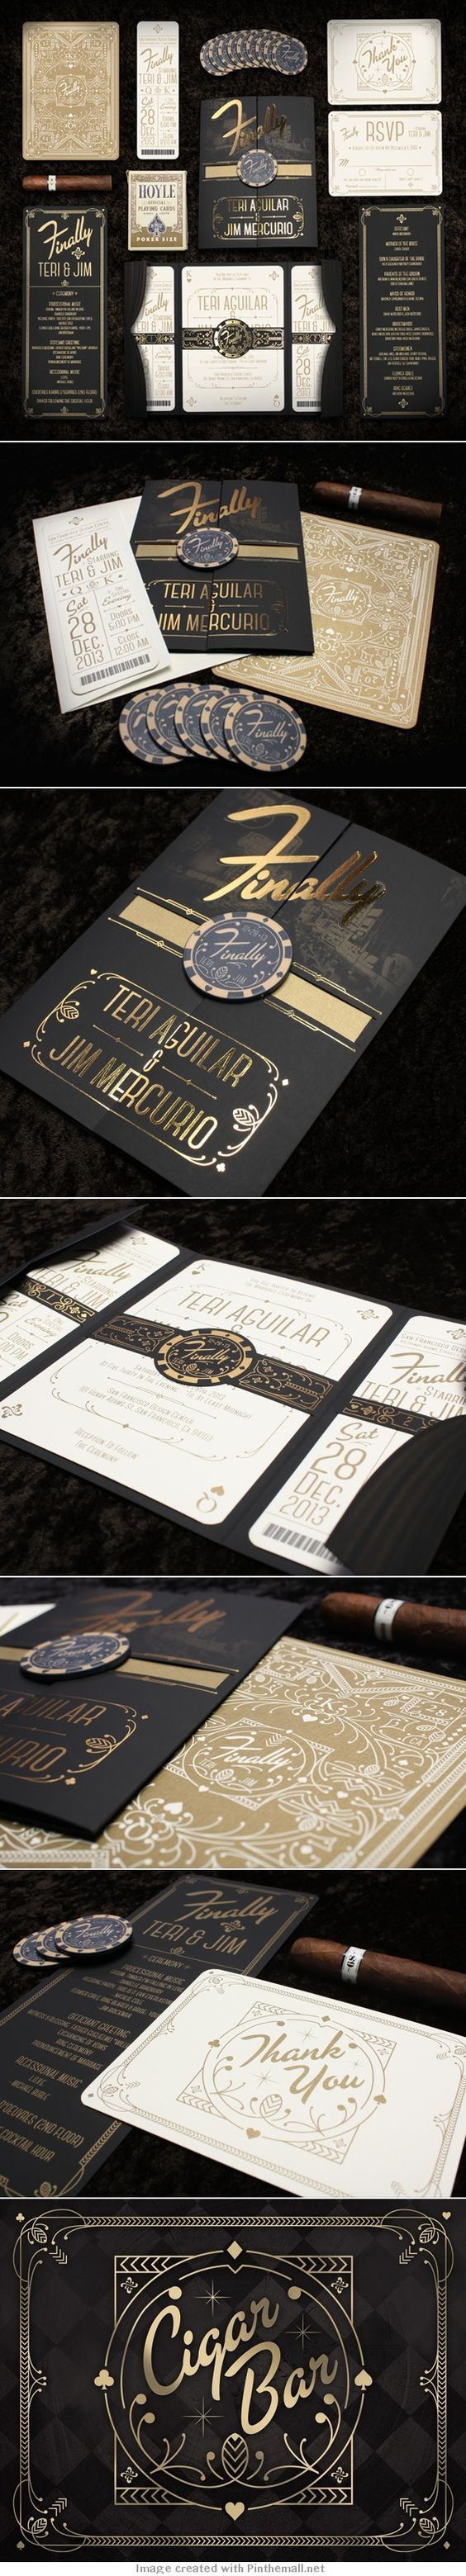 Mercurio Wedding Invitations